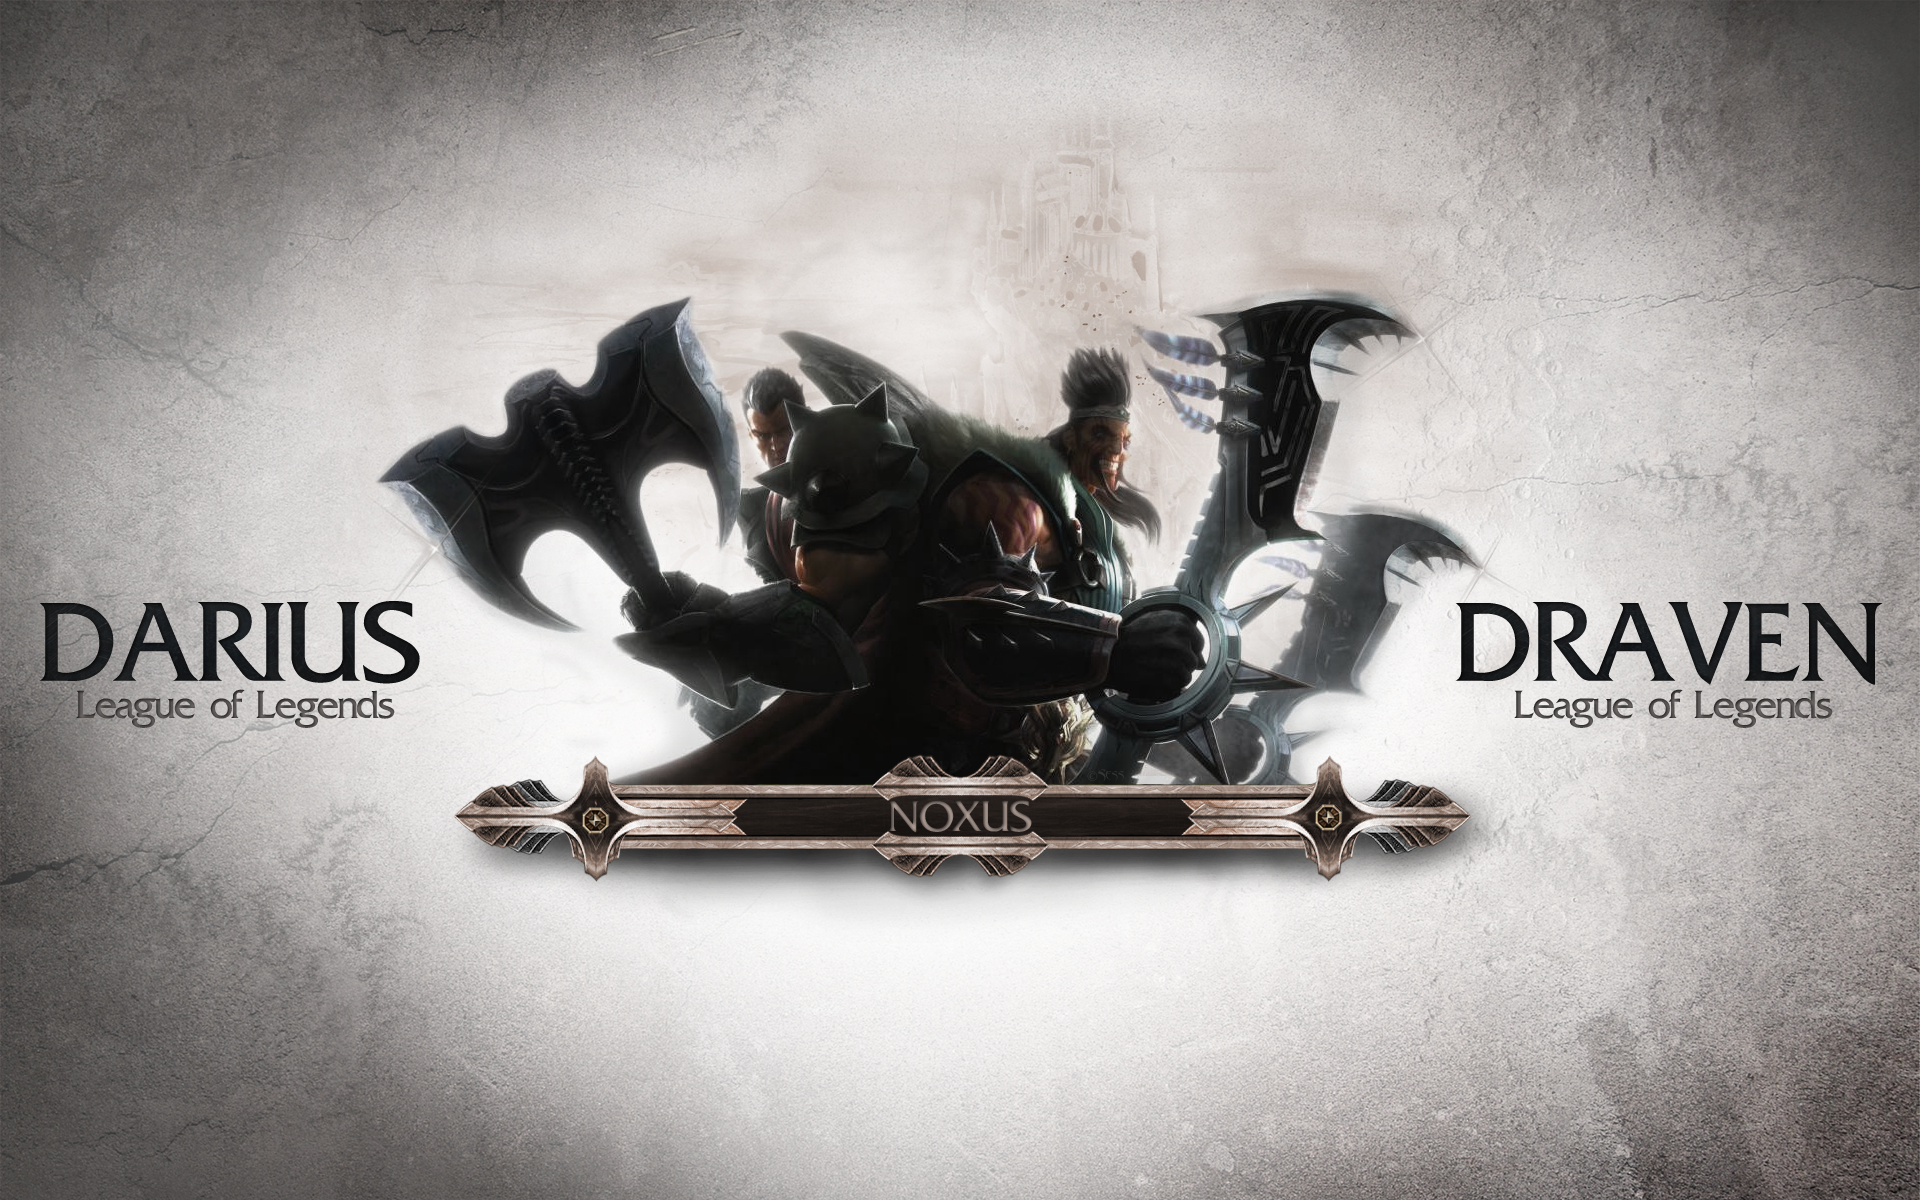 Darius & Draven wallpaper